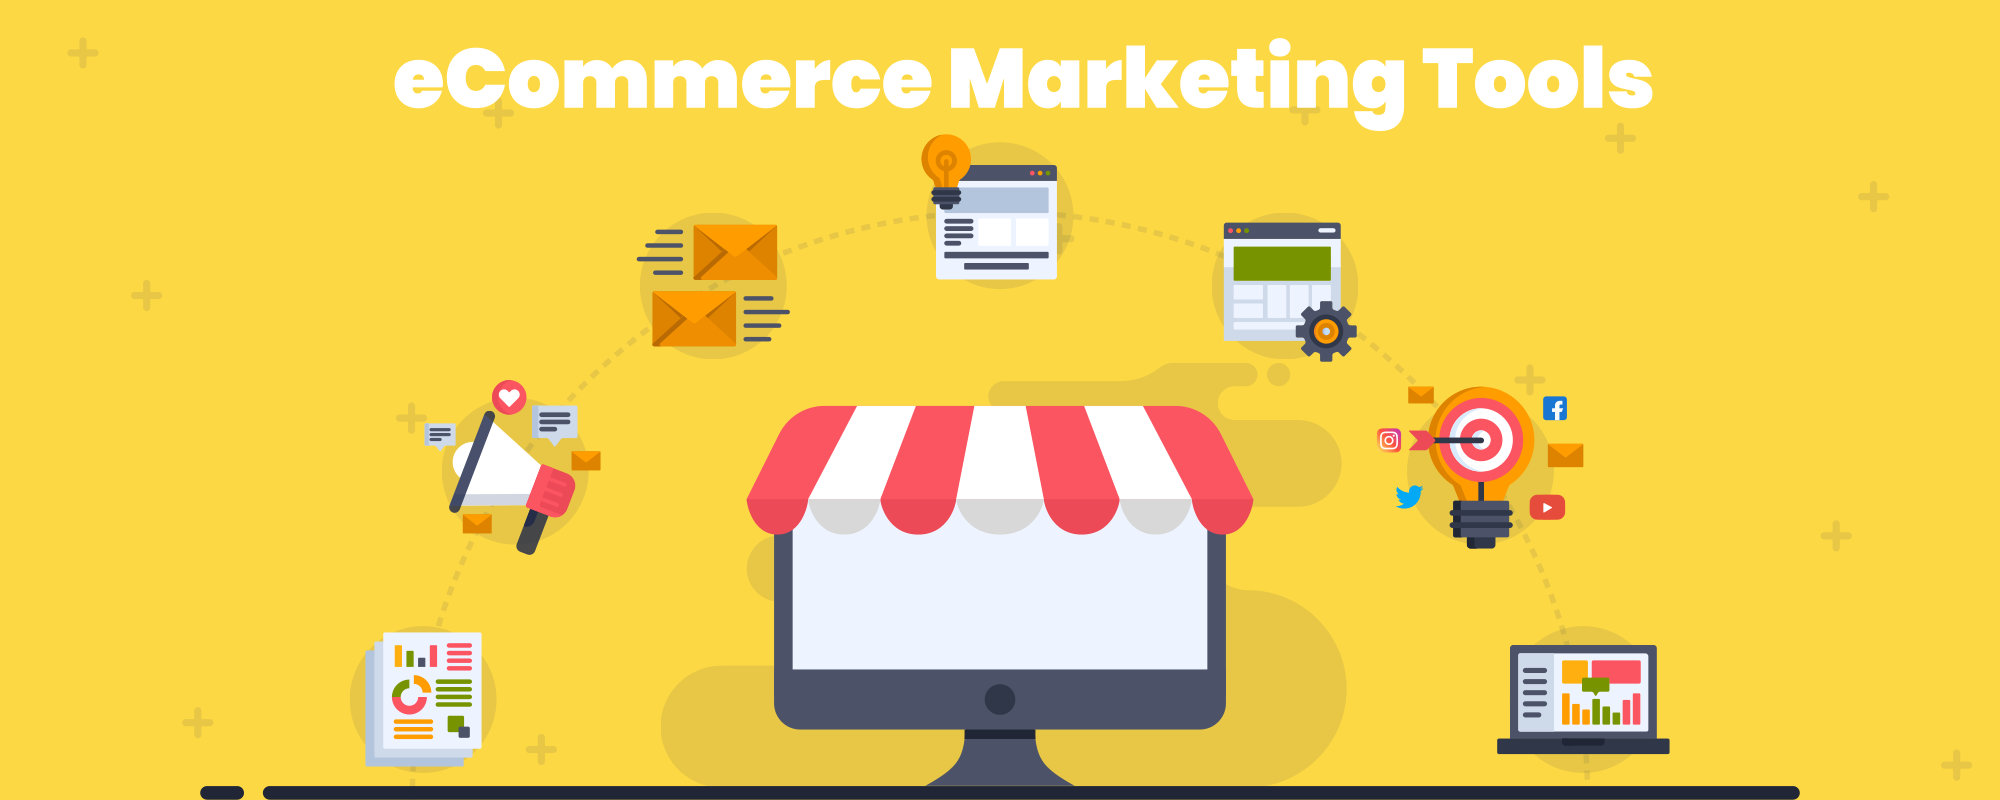 ecommerce_marketing_tools_2020_adnabu